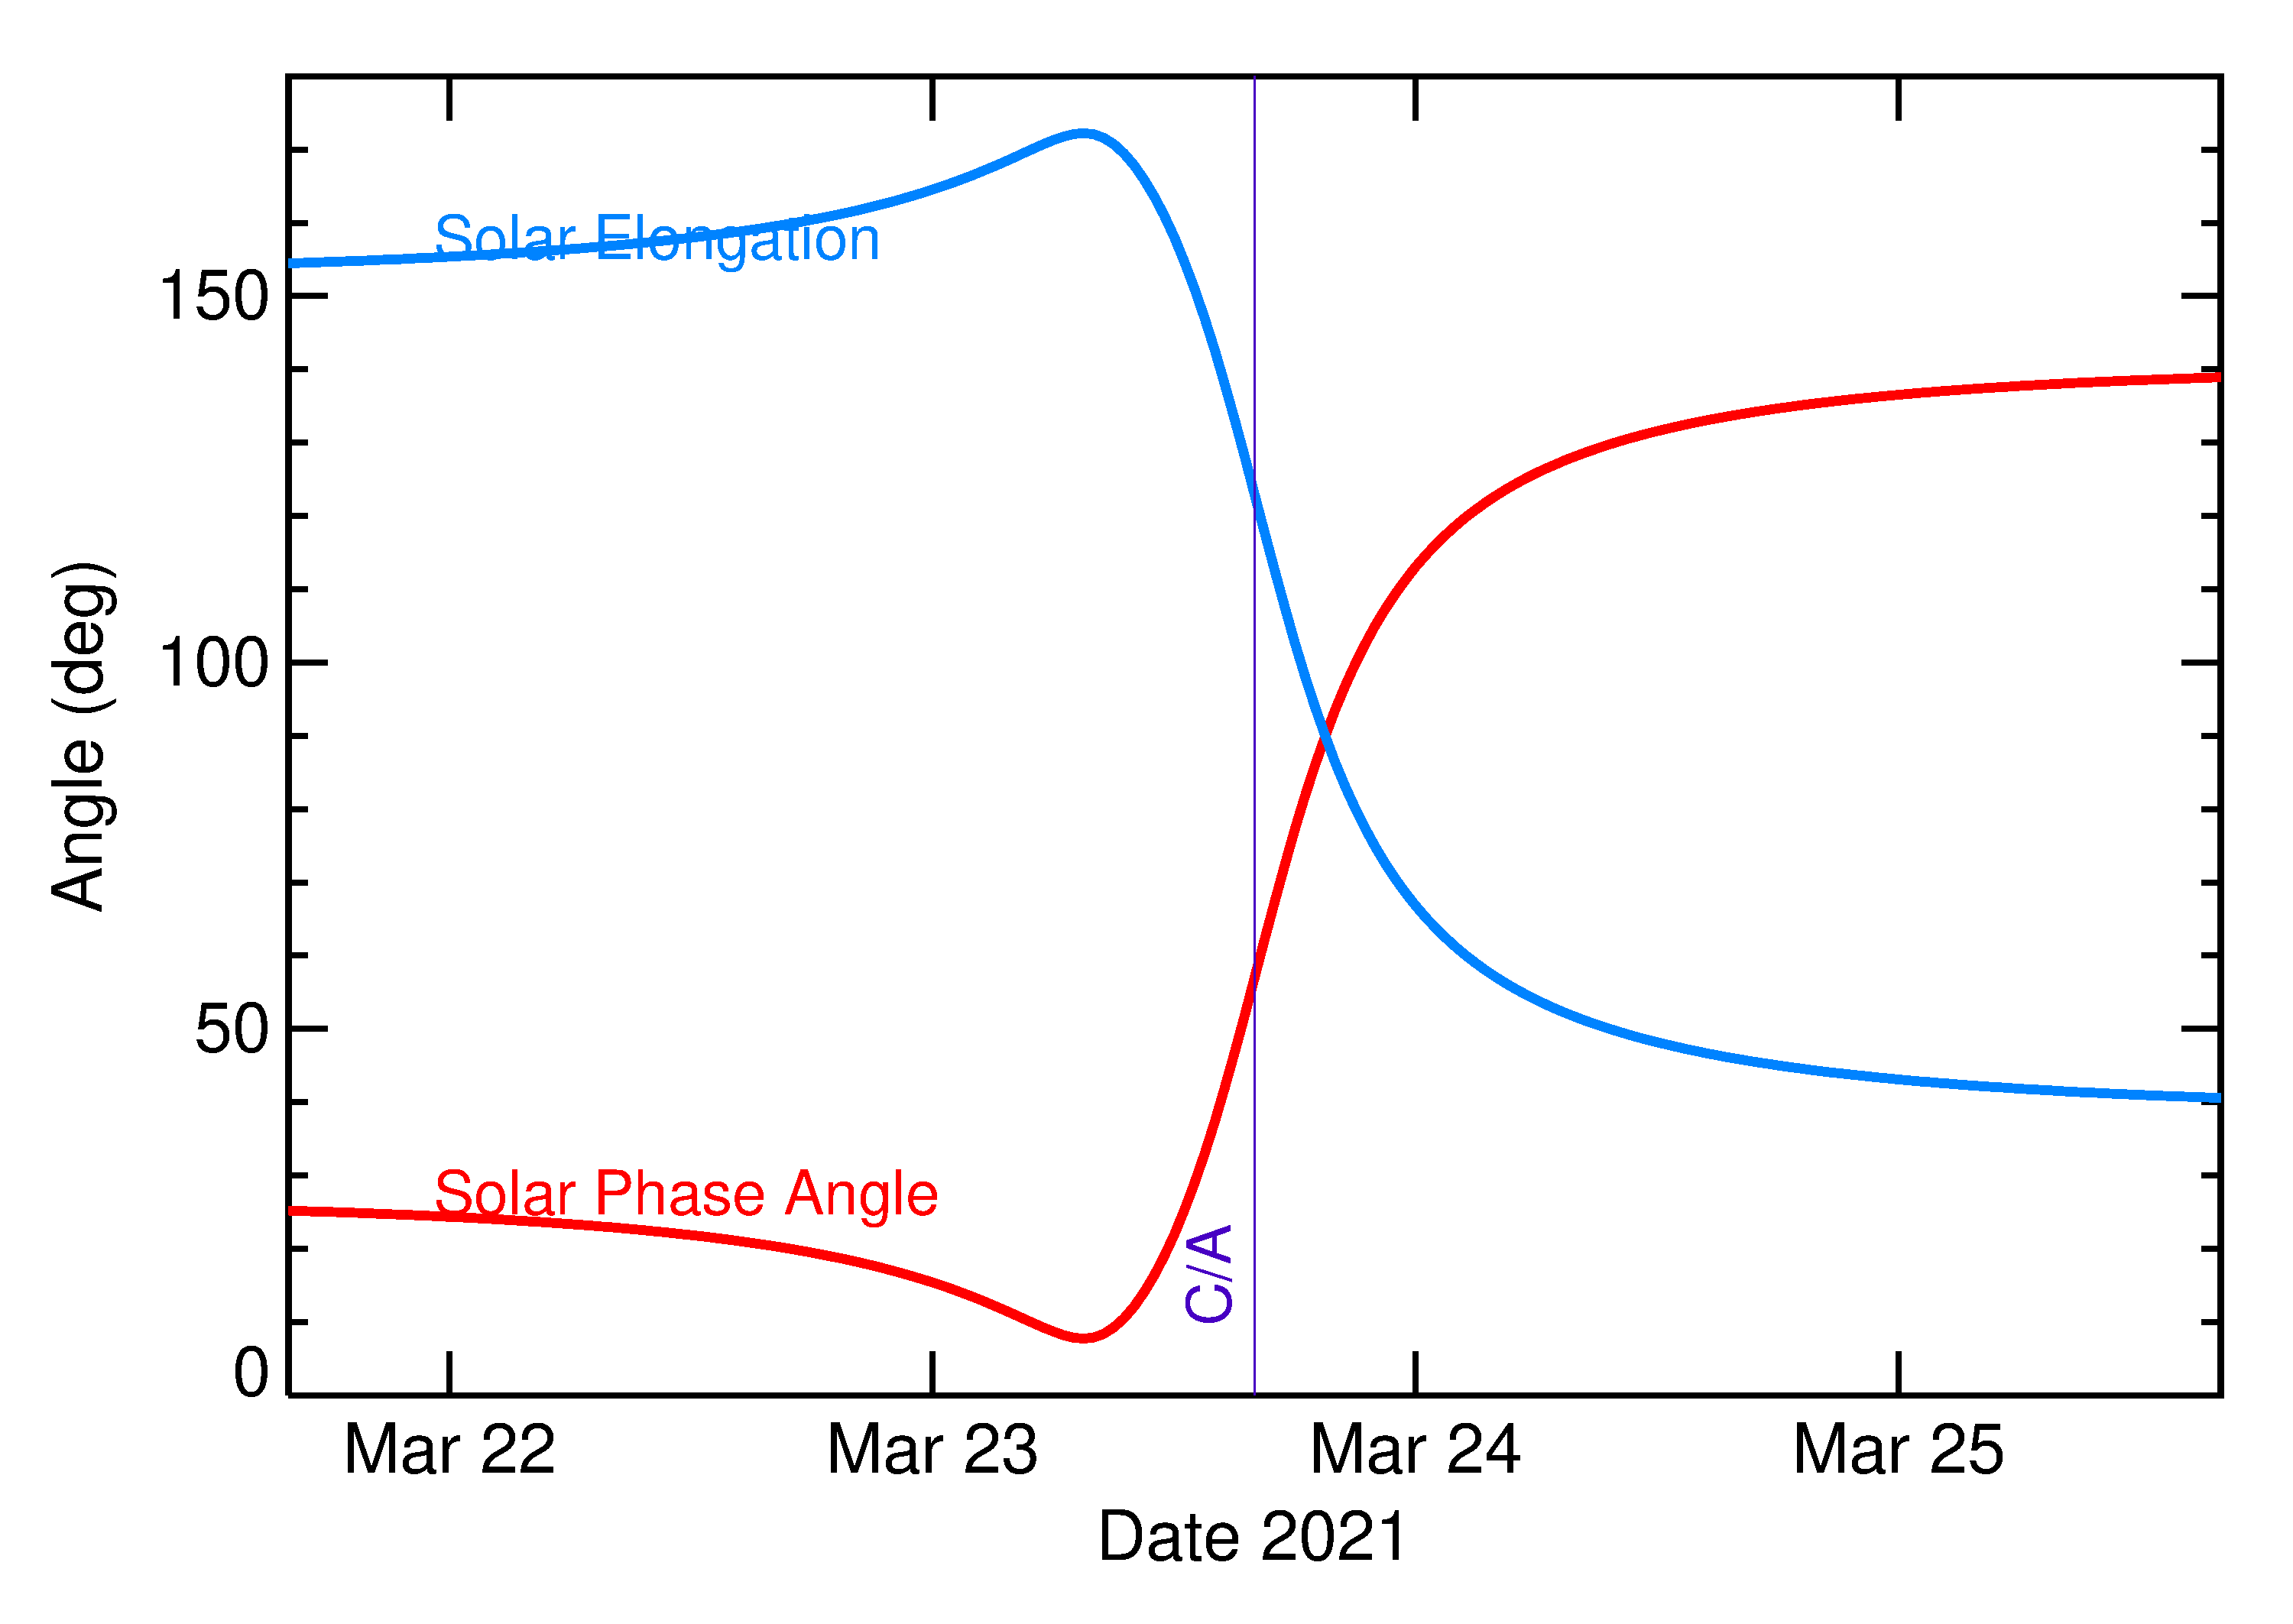 Solar Elongation and Solar Phase Angle of 2021 FH in the days around closest approach